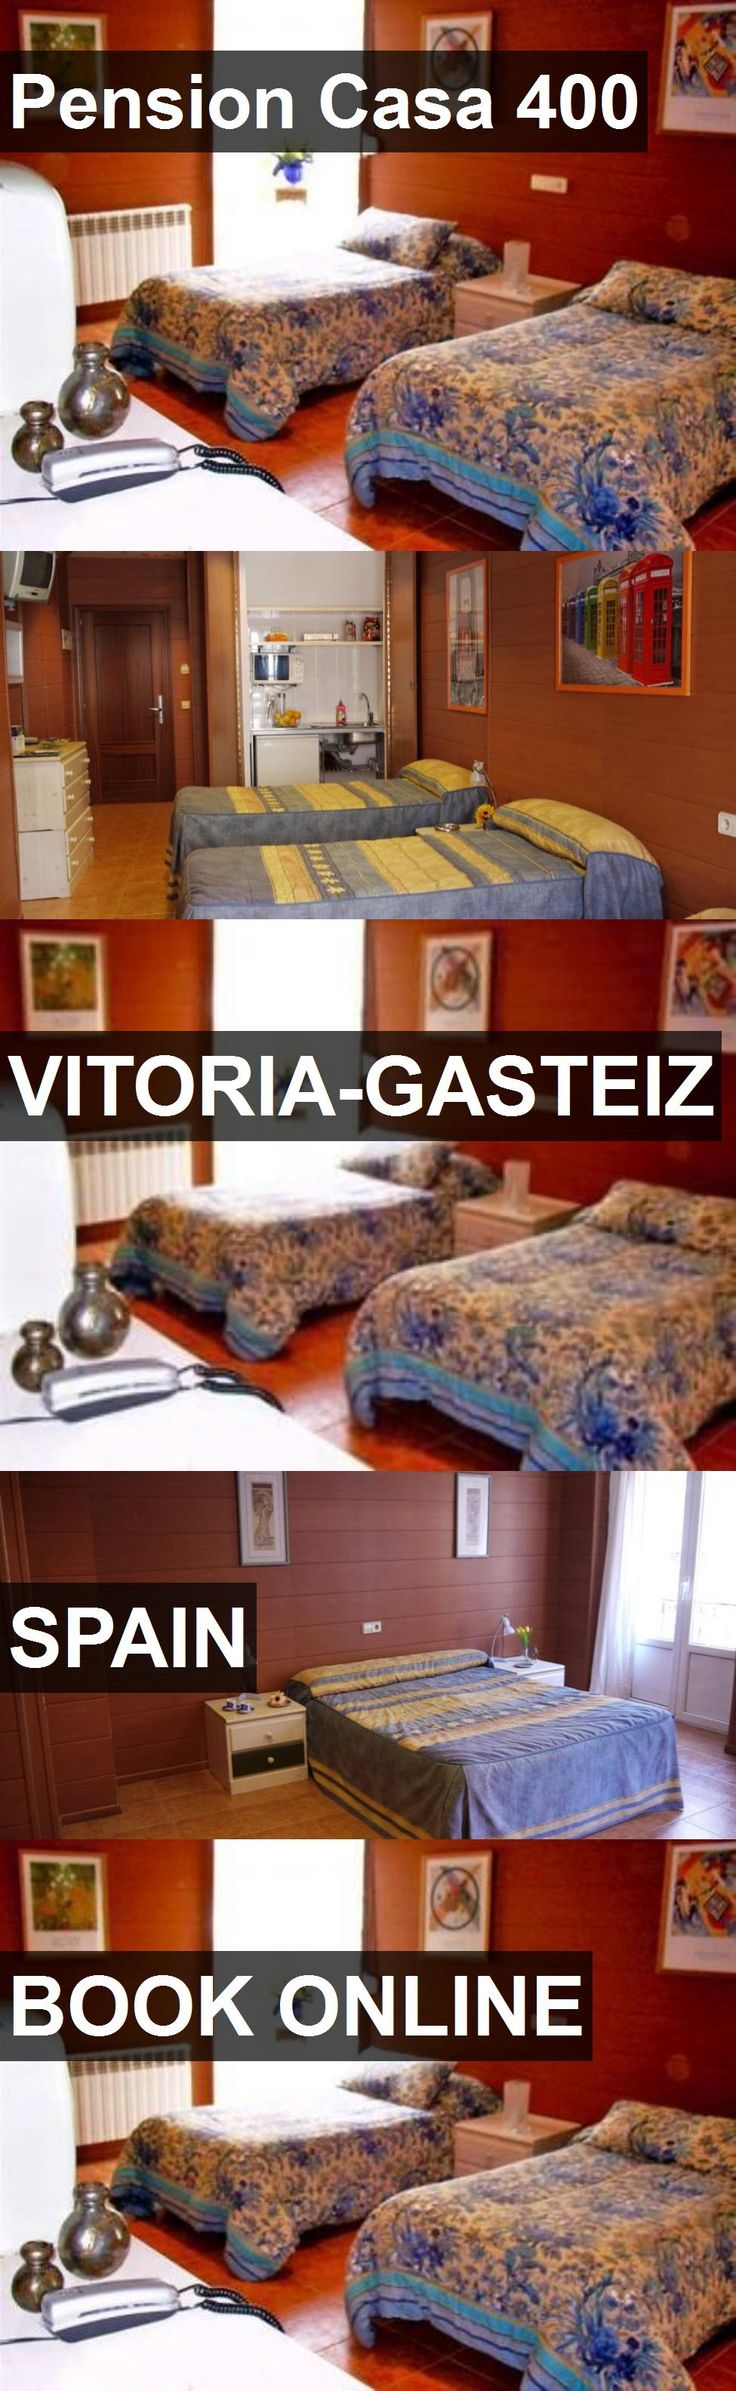 Hotel Pension Casa 400 in Vitoria-Gasteiz, Spain. For more information, photos, reviews and best prices please follow the link. #Spain #Vitoria-Gasteiz #travel #vacation #hotel